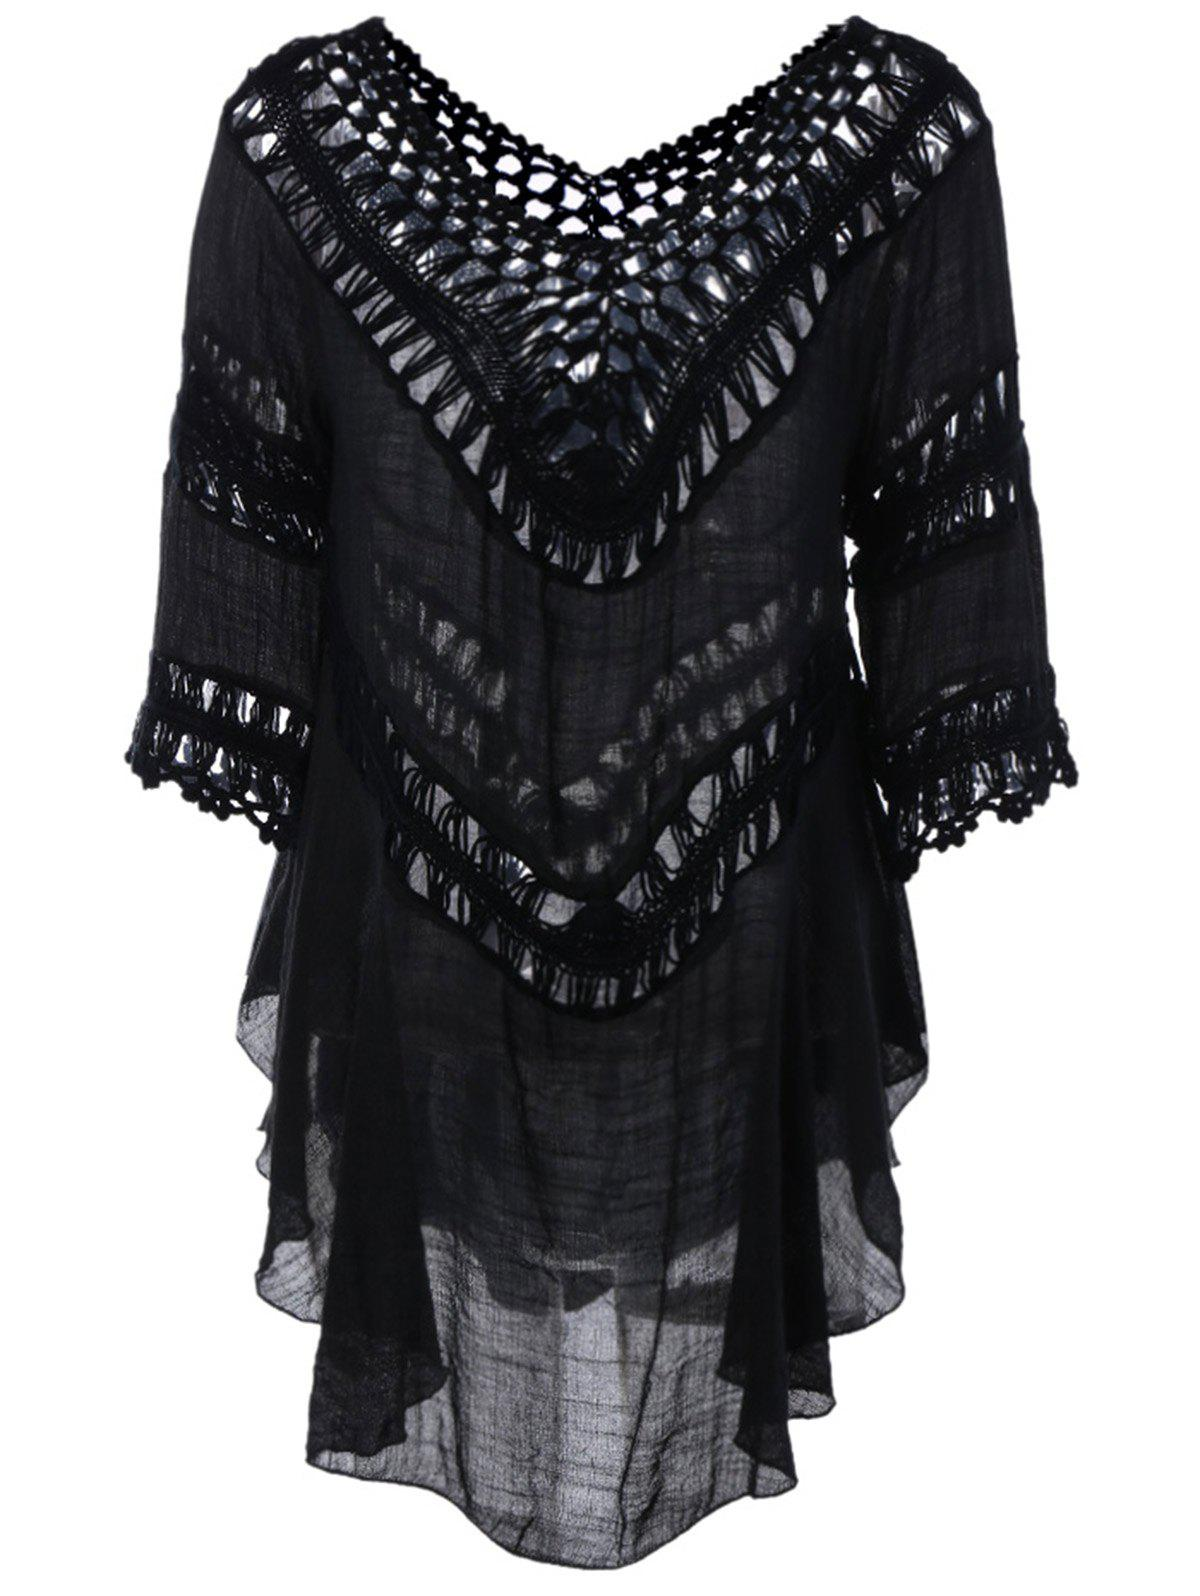 Plunge V Neck See-Through Crochet Tunic TopWOMEN<br><br>Size: ONE SIZE; Color: BLACK; Style: Fashion; Material: Polyester; Shirt Length: Long; Sleeve Length: Three Quarter; Collar: Plunging Neck; Pattern Type: Solid; Embellishment: Hollow Out; Season: Fall,Spring,Summer; Weight: 0.211kg; Package Contents: 1 x Blouse;